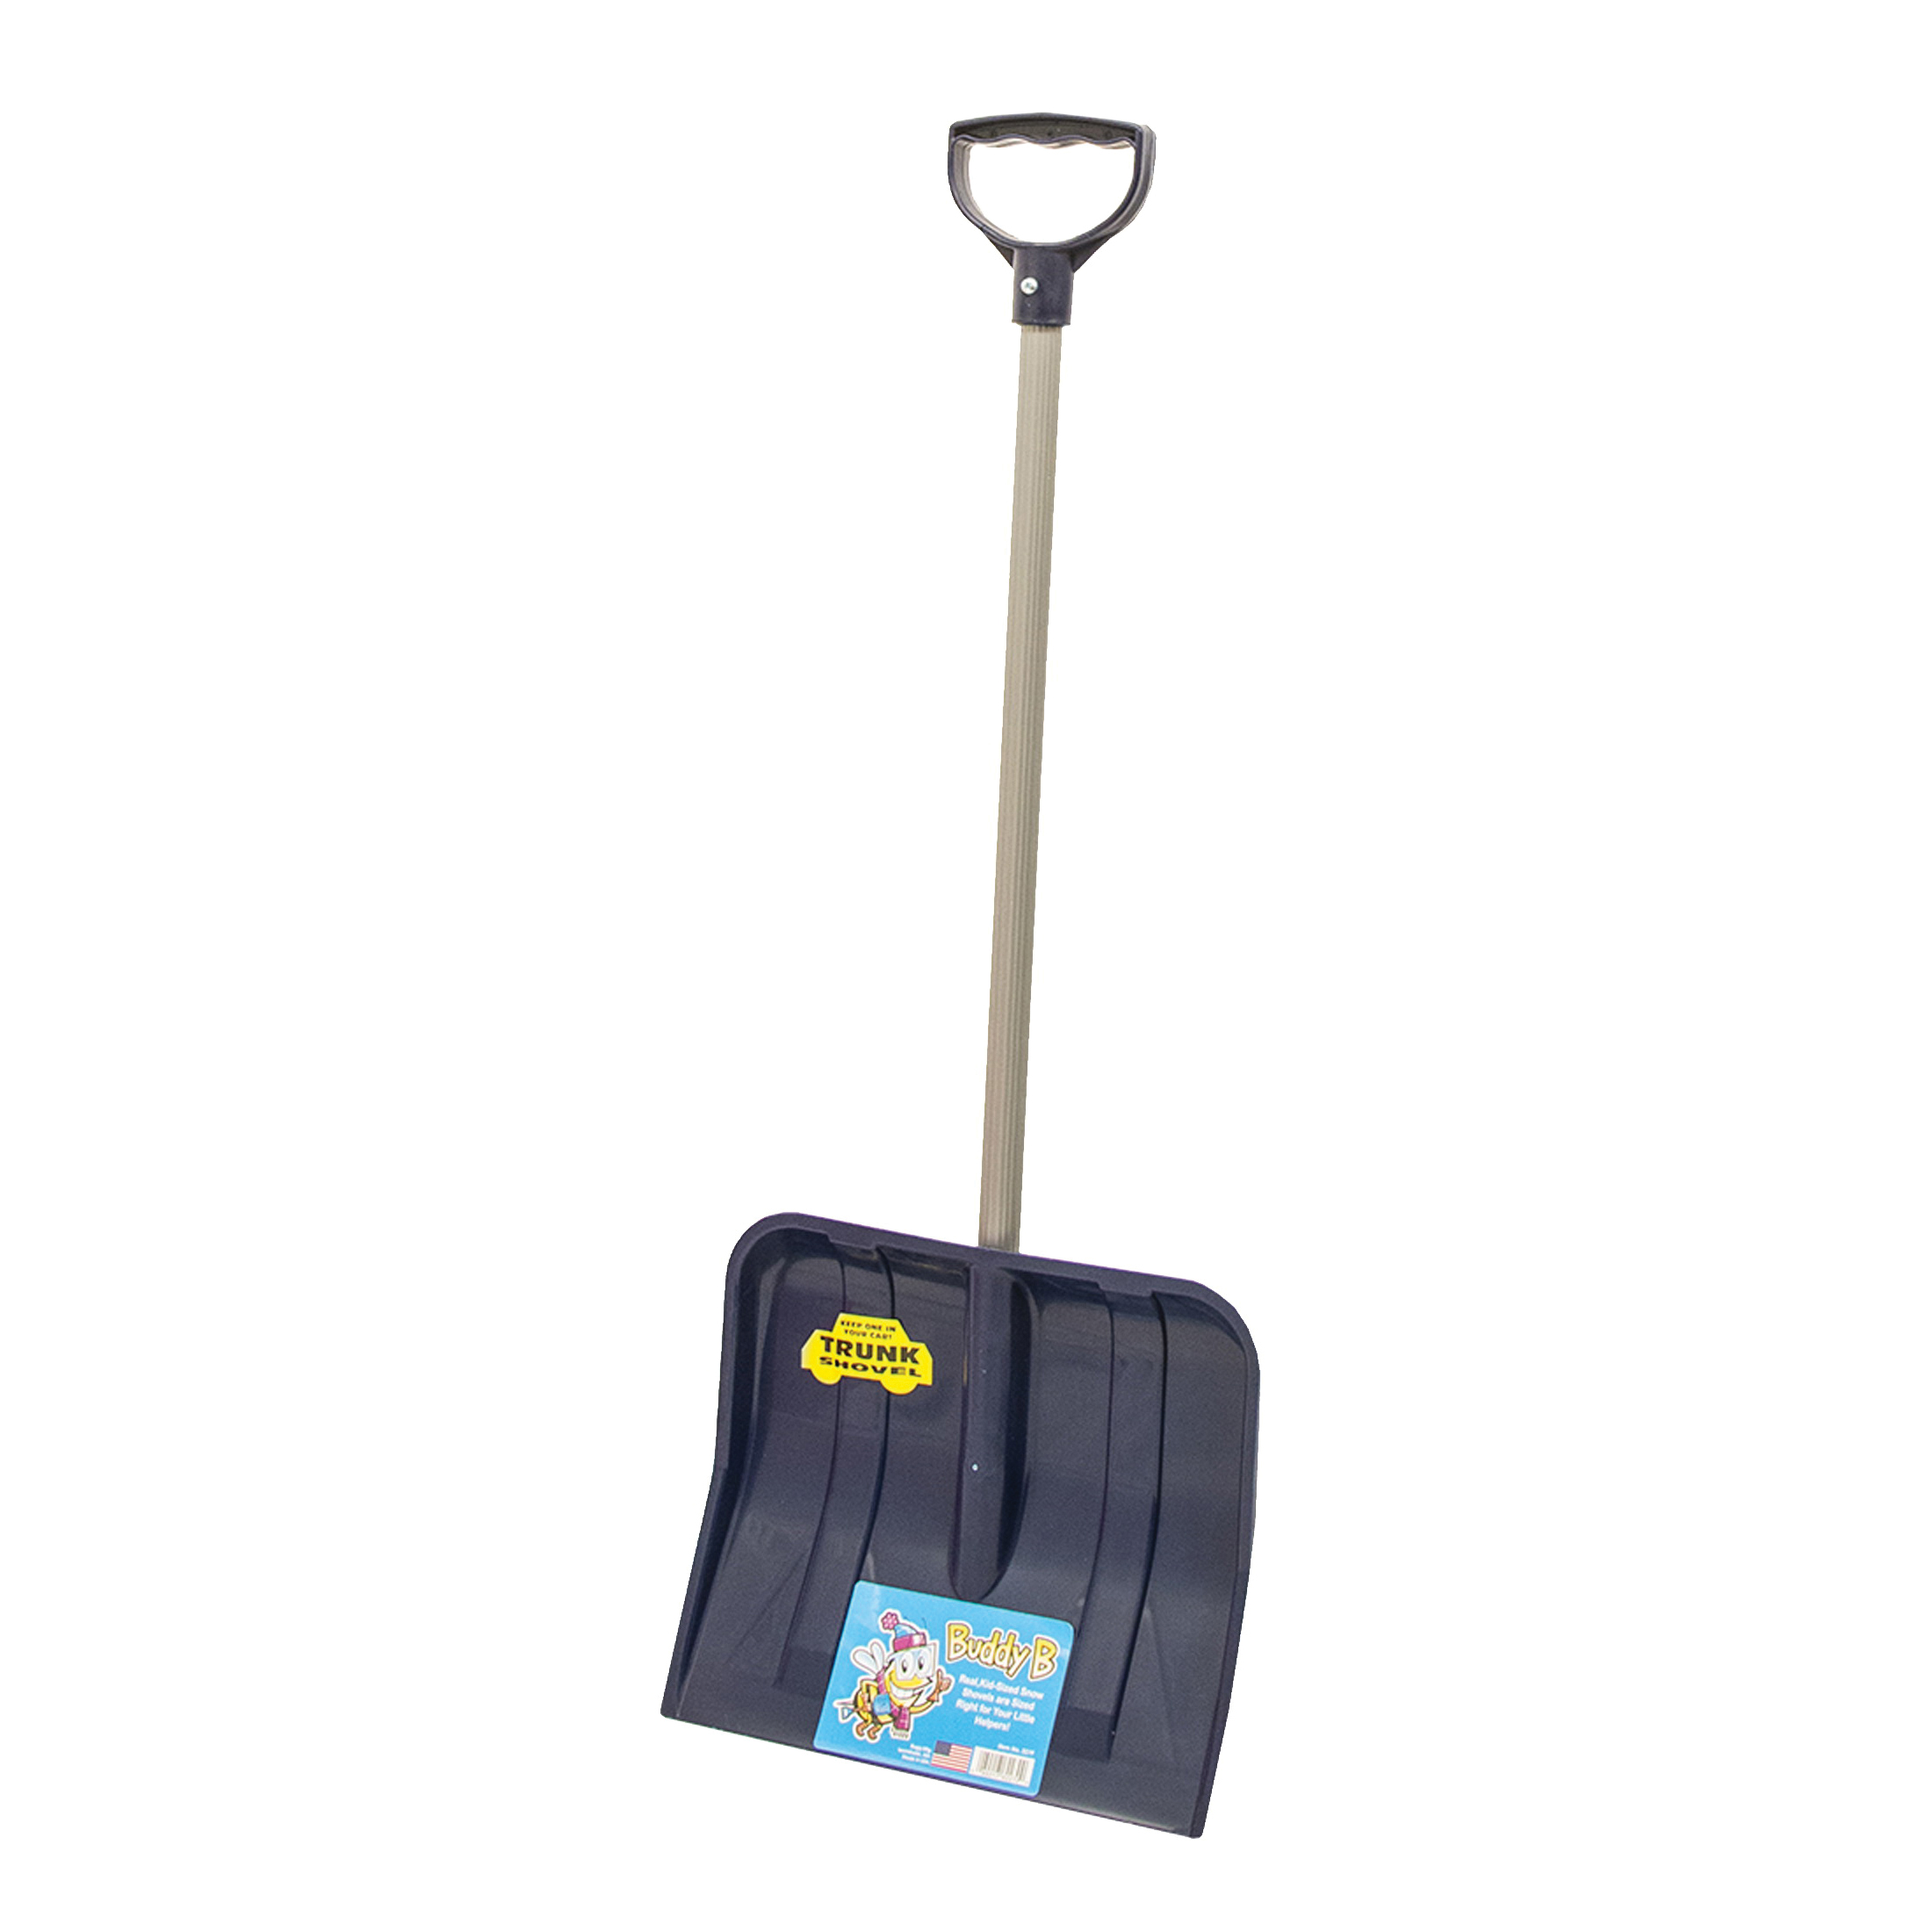 Picture of RUGG BUDDY B 227P Kids Shovel, 12 in W Blade, 10 in L Blade, Polyethylene Blade, Steel Handle, 34 in OAL, Blue